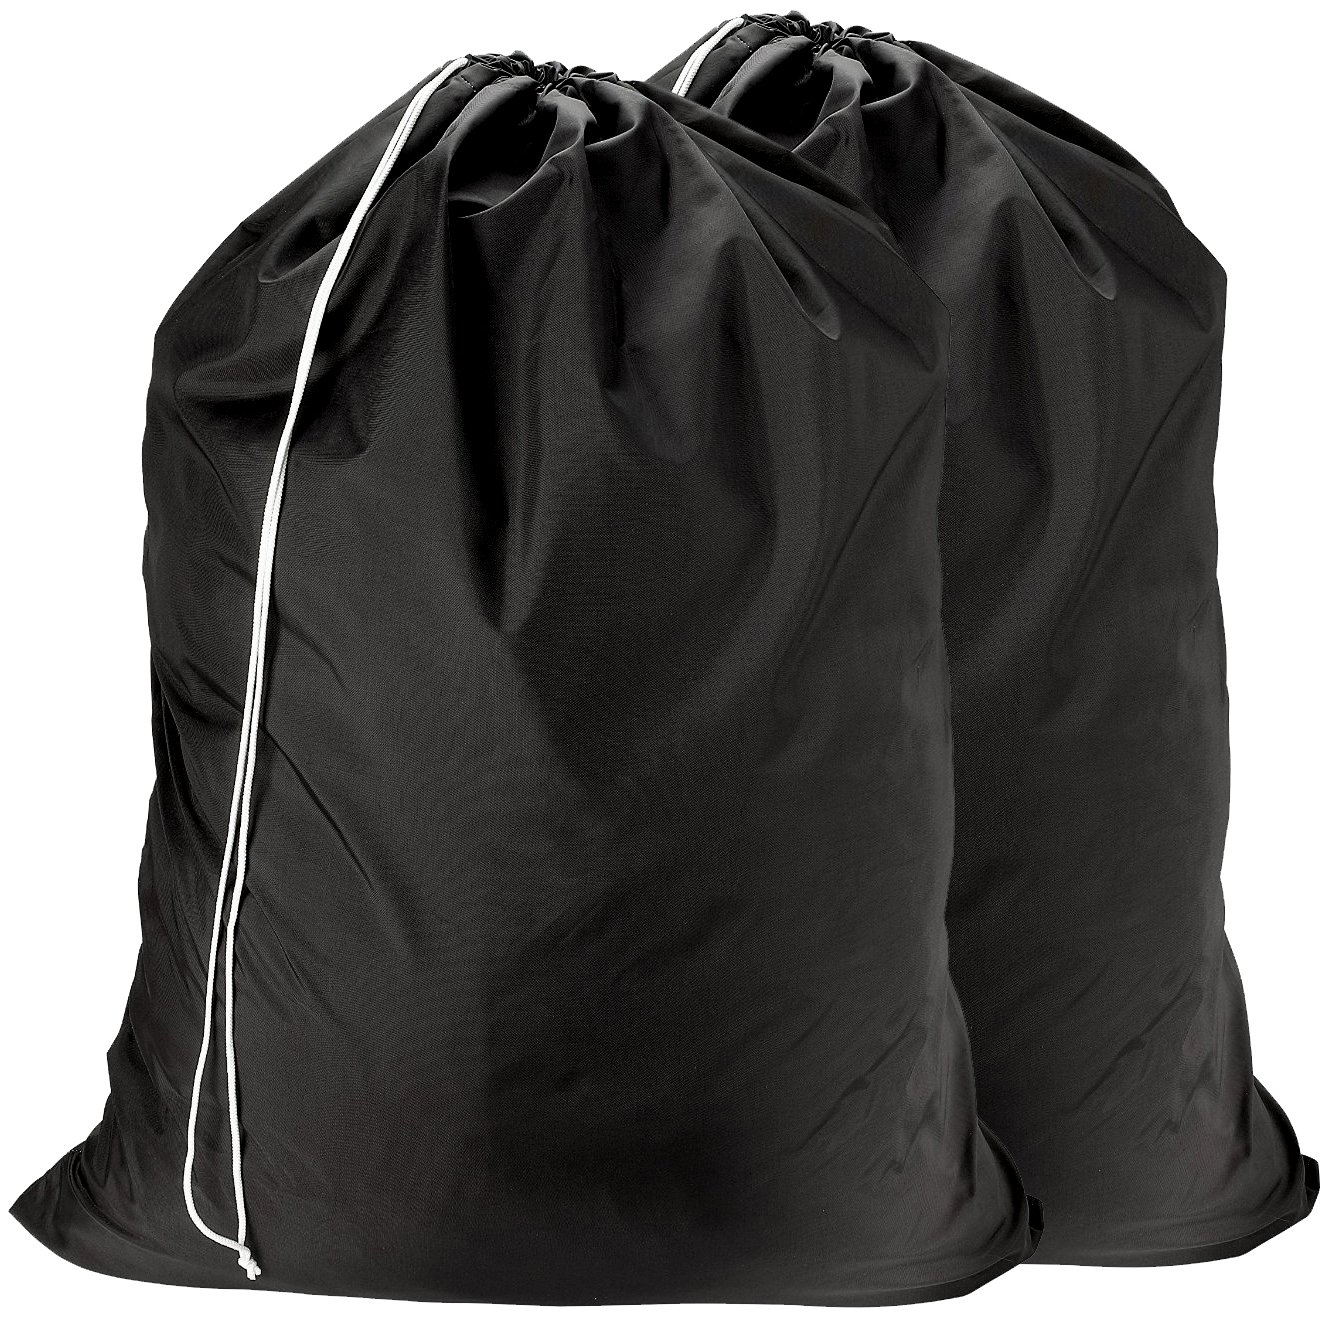 Nylon Laundry Bag - Locking Drawstring Closure and Machine Washable. These Large Bags will Fit a Laundry Basket or Hamper and Strong Enough to Carry up to Three Loads of Clothes. (Black | 2-PACK) by Handy Laundry (Image #1)